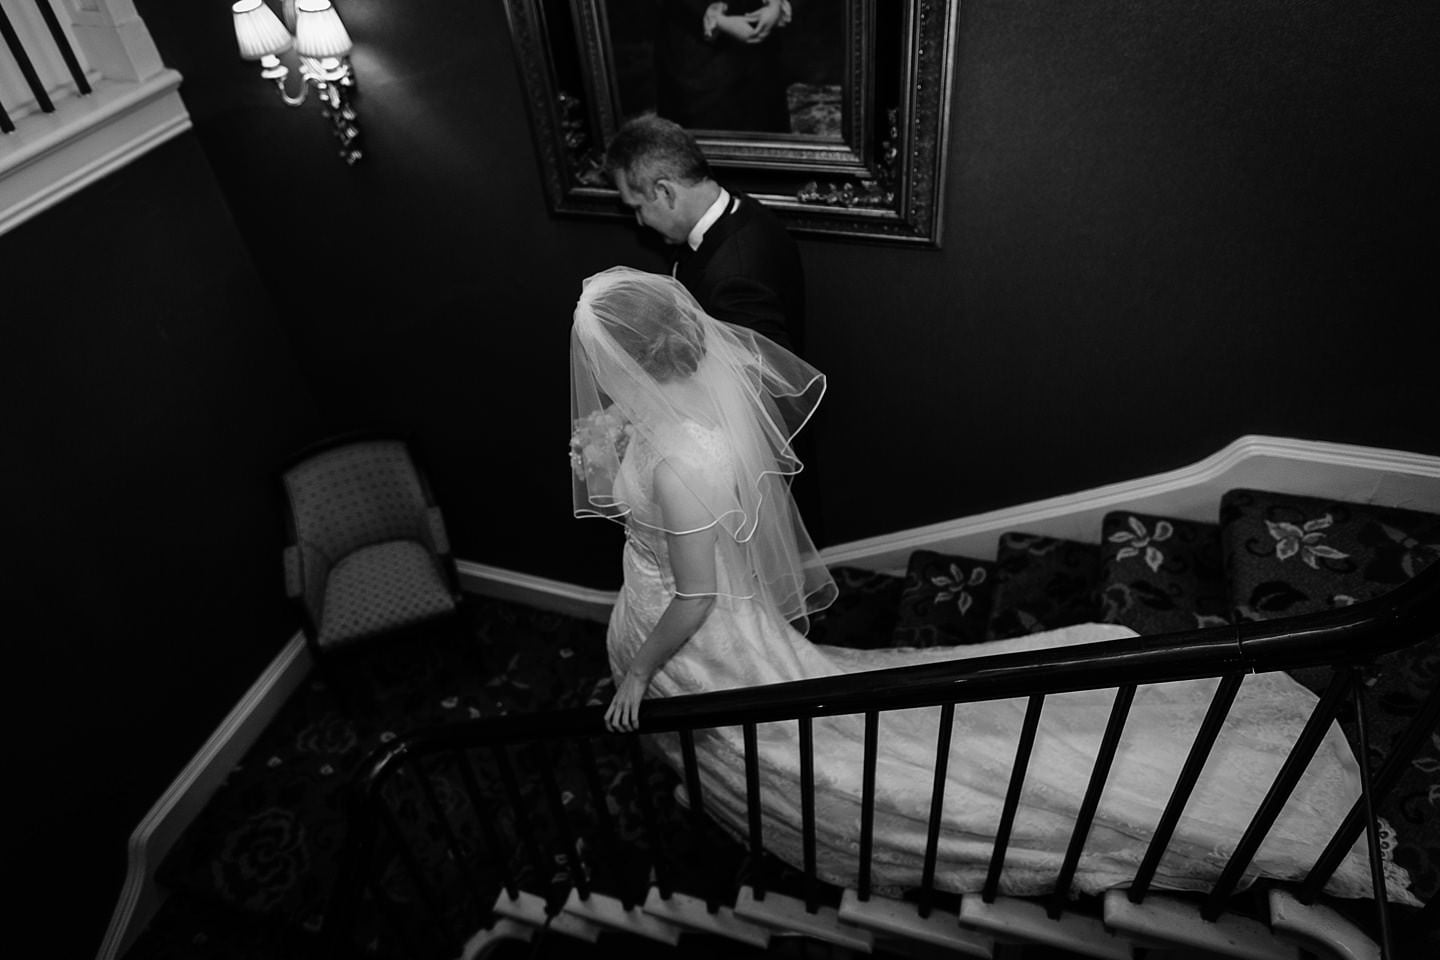 Rowton Castle Wedding Photographer pbartworks captures Rachel and her Father descending the staircase